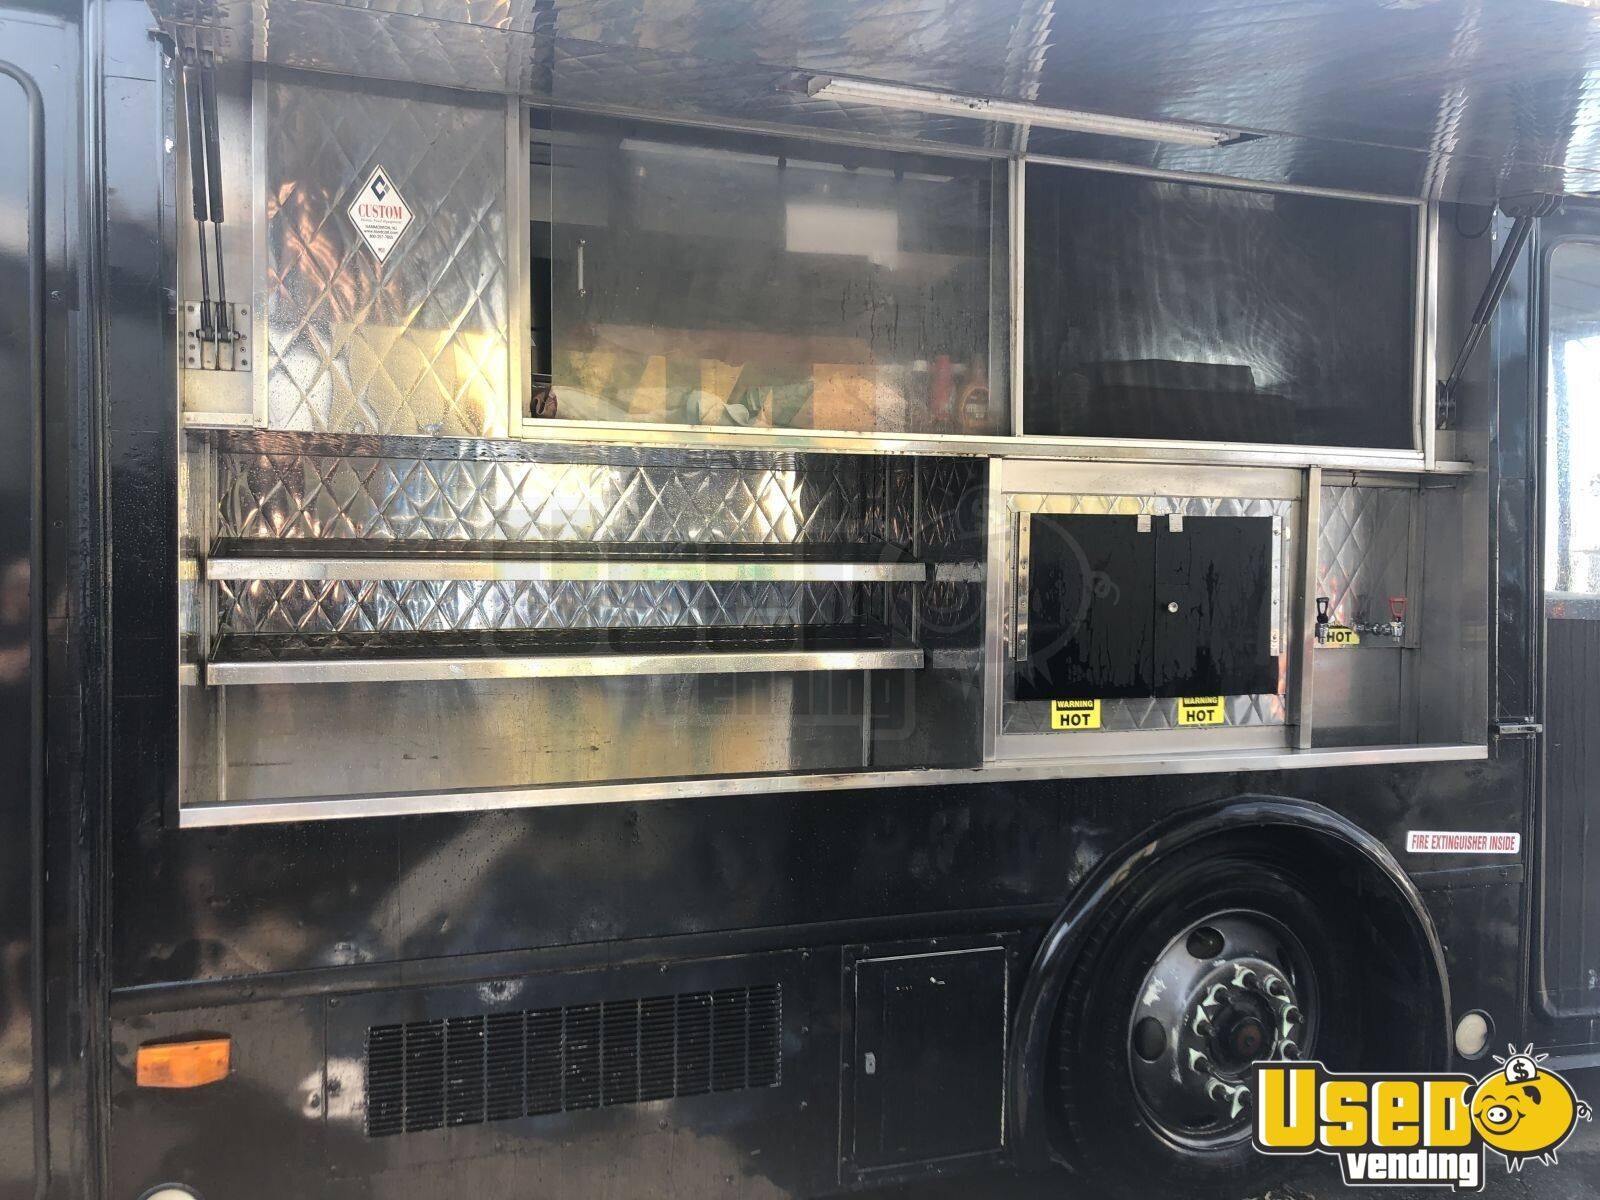 2002 Spartan Catering Food Truck Floor Drains New York for Sale - 5